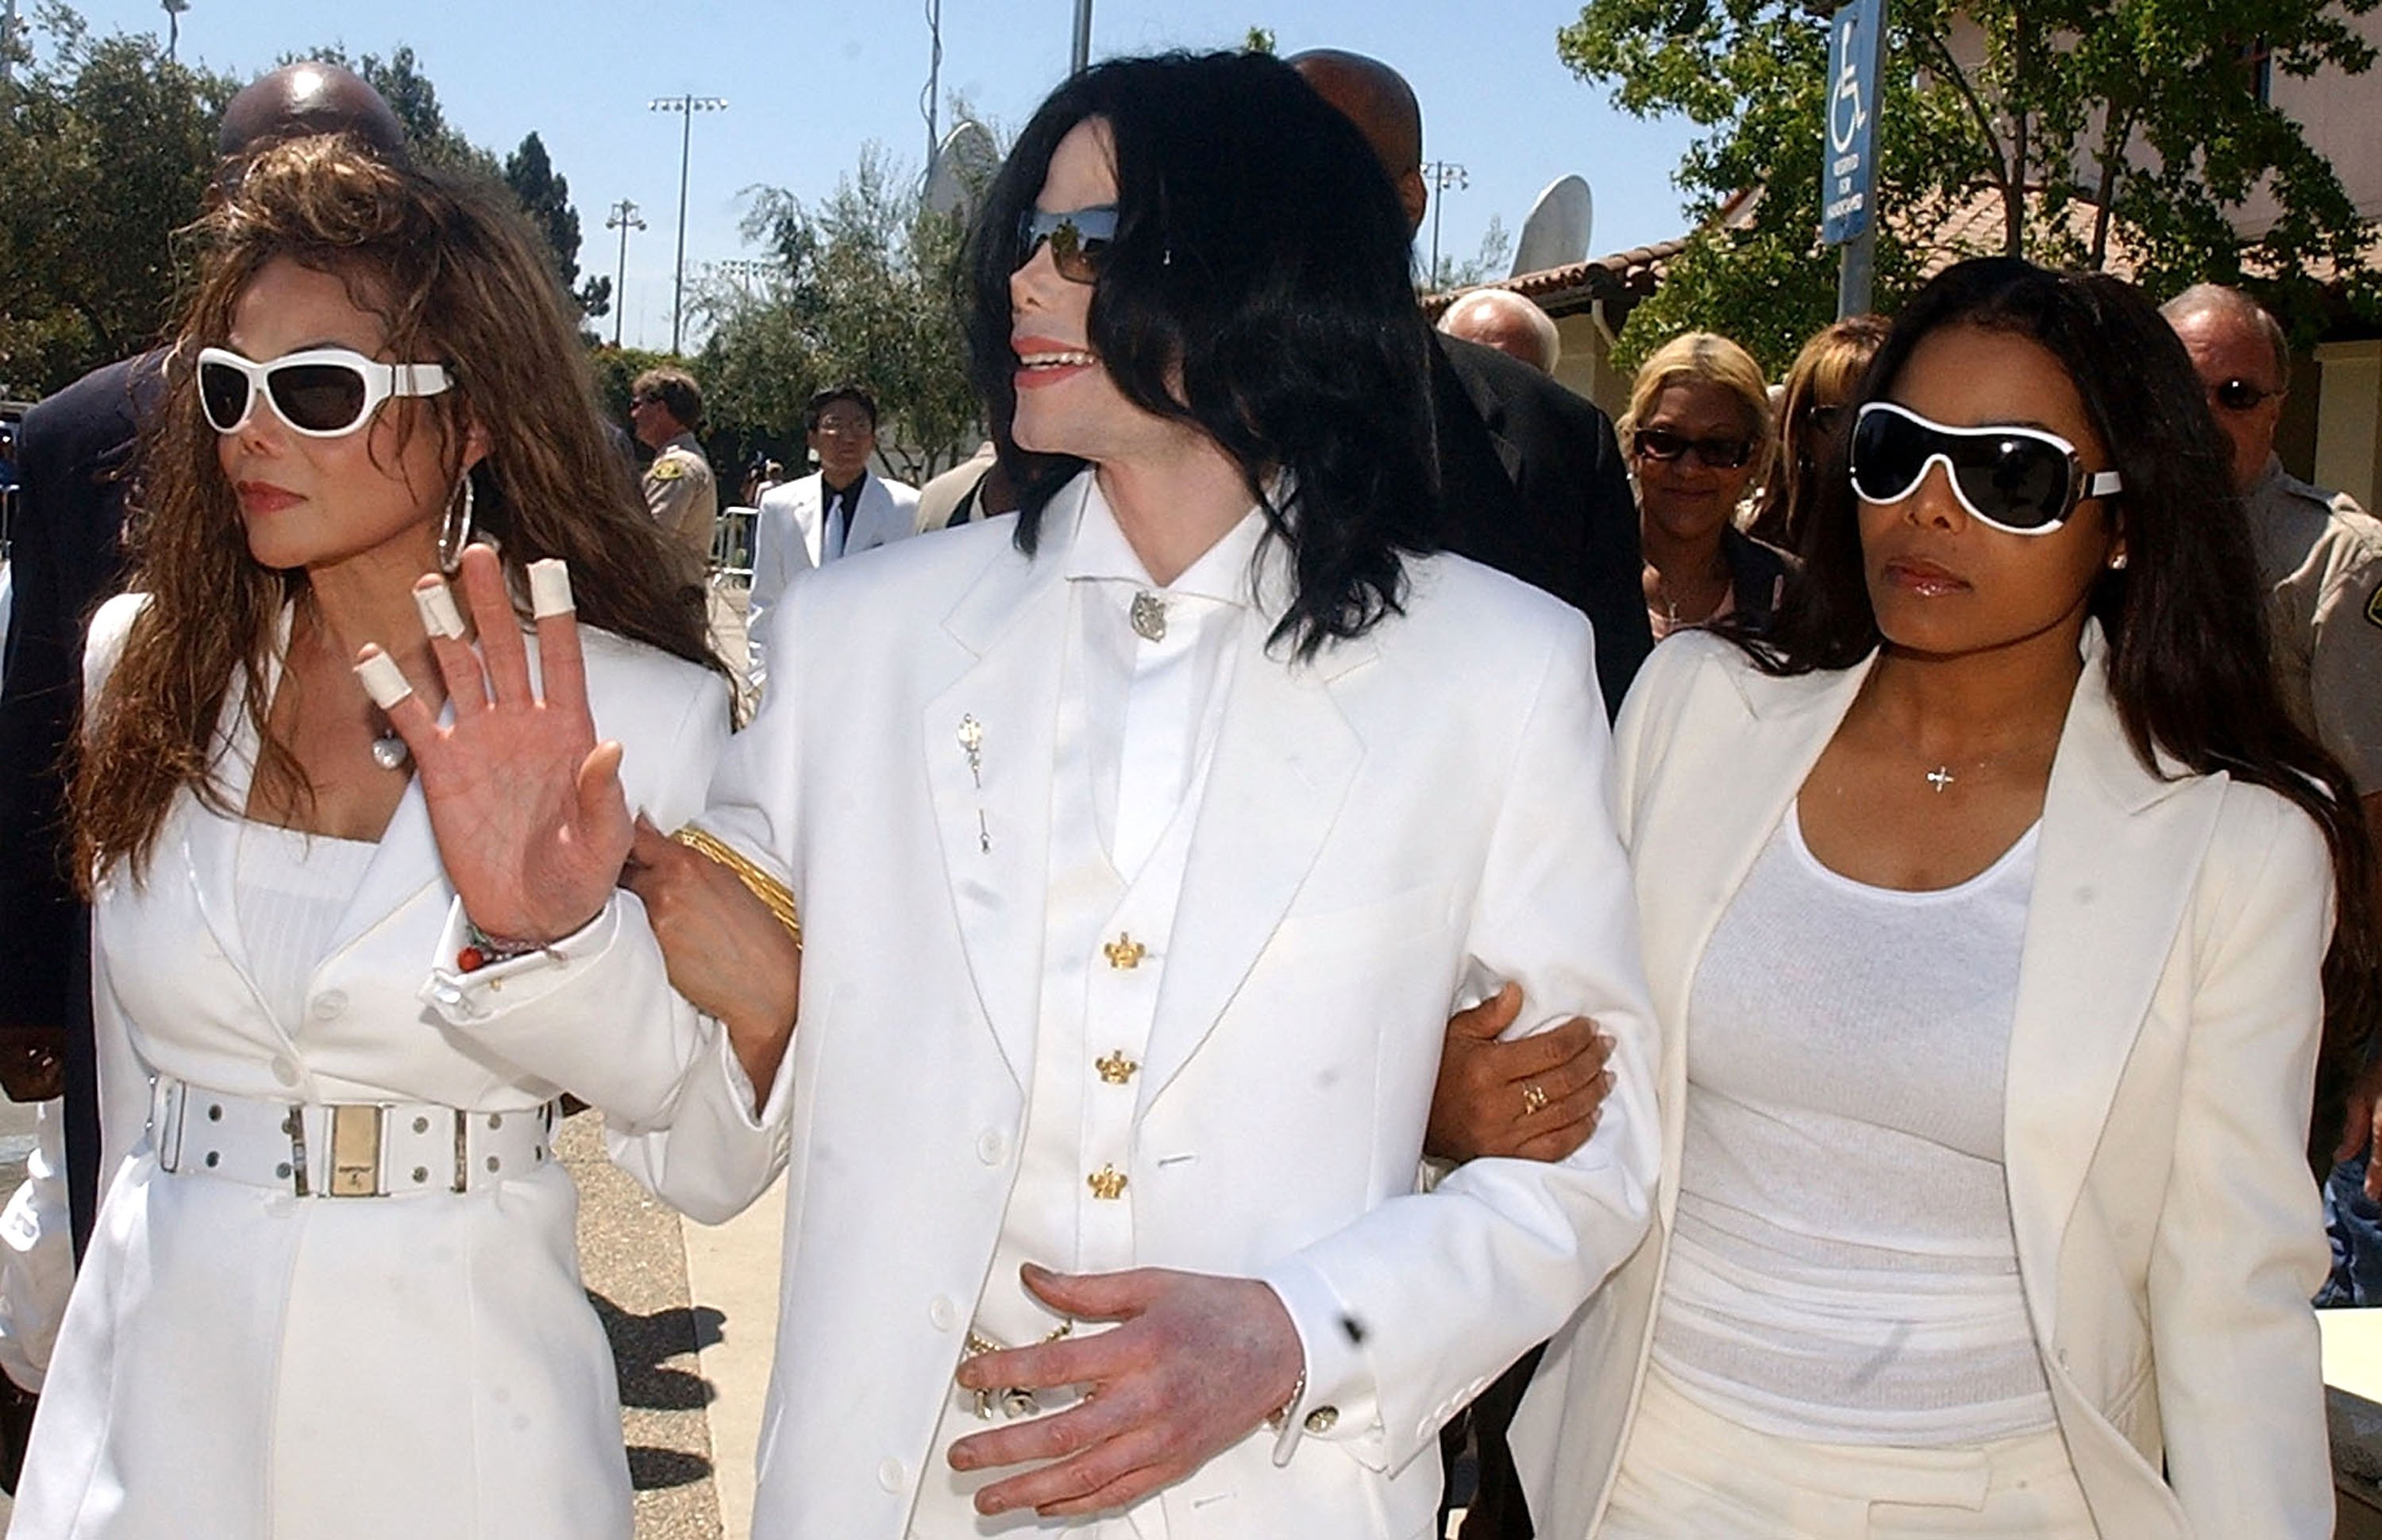 Michael Jackson with sisters LaToya Jackson and Janet Jackson at the Santa Maria courthouse on August 16, 2004 in Santa Maria, California. | Source: Getty Images